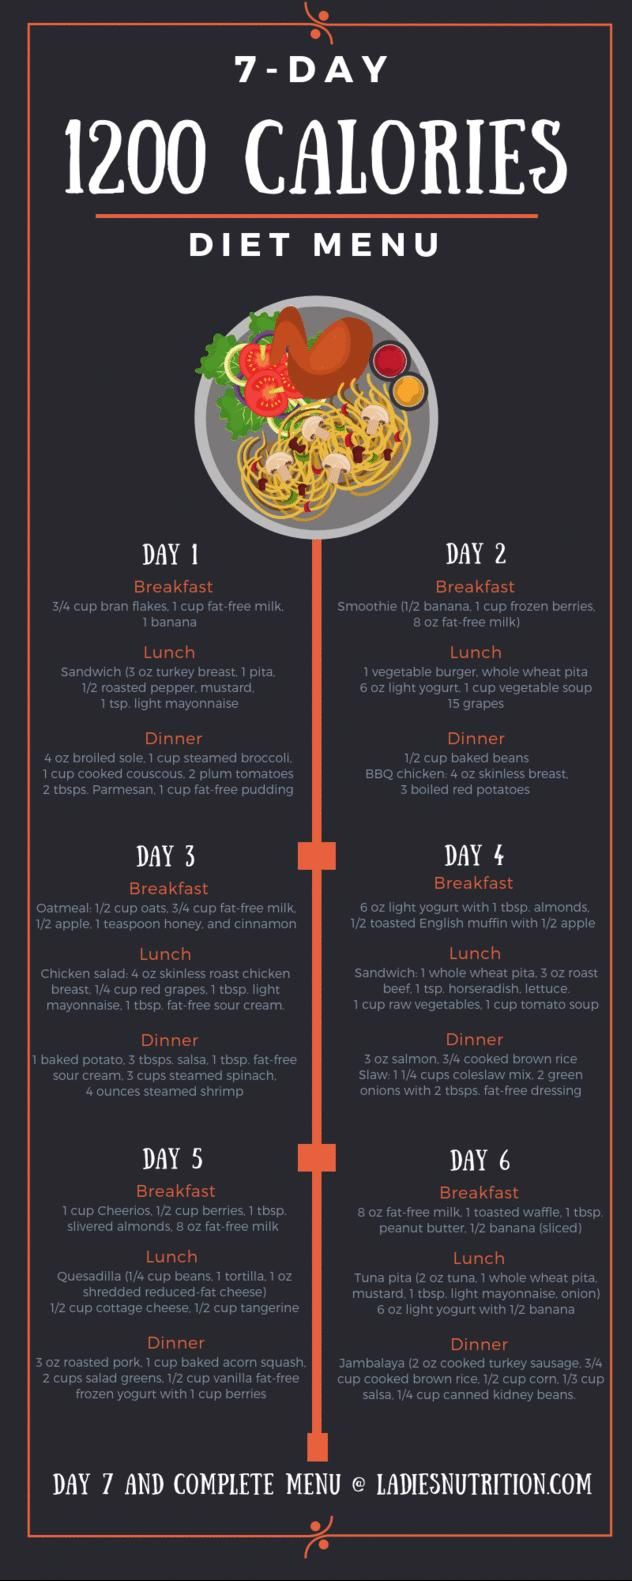 A 7-Day, 1200 Calorie Meal Plan  - fitness eats - #7Day #calorie #eats #Fitness #Meal #Plan